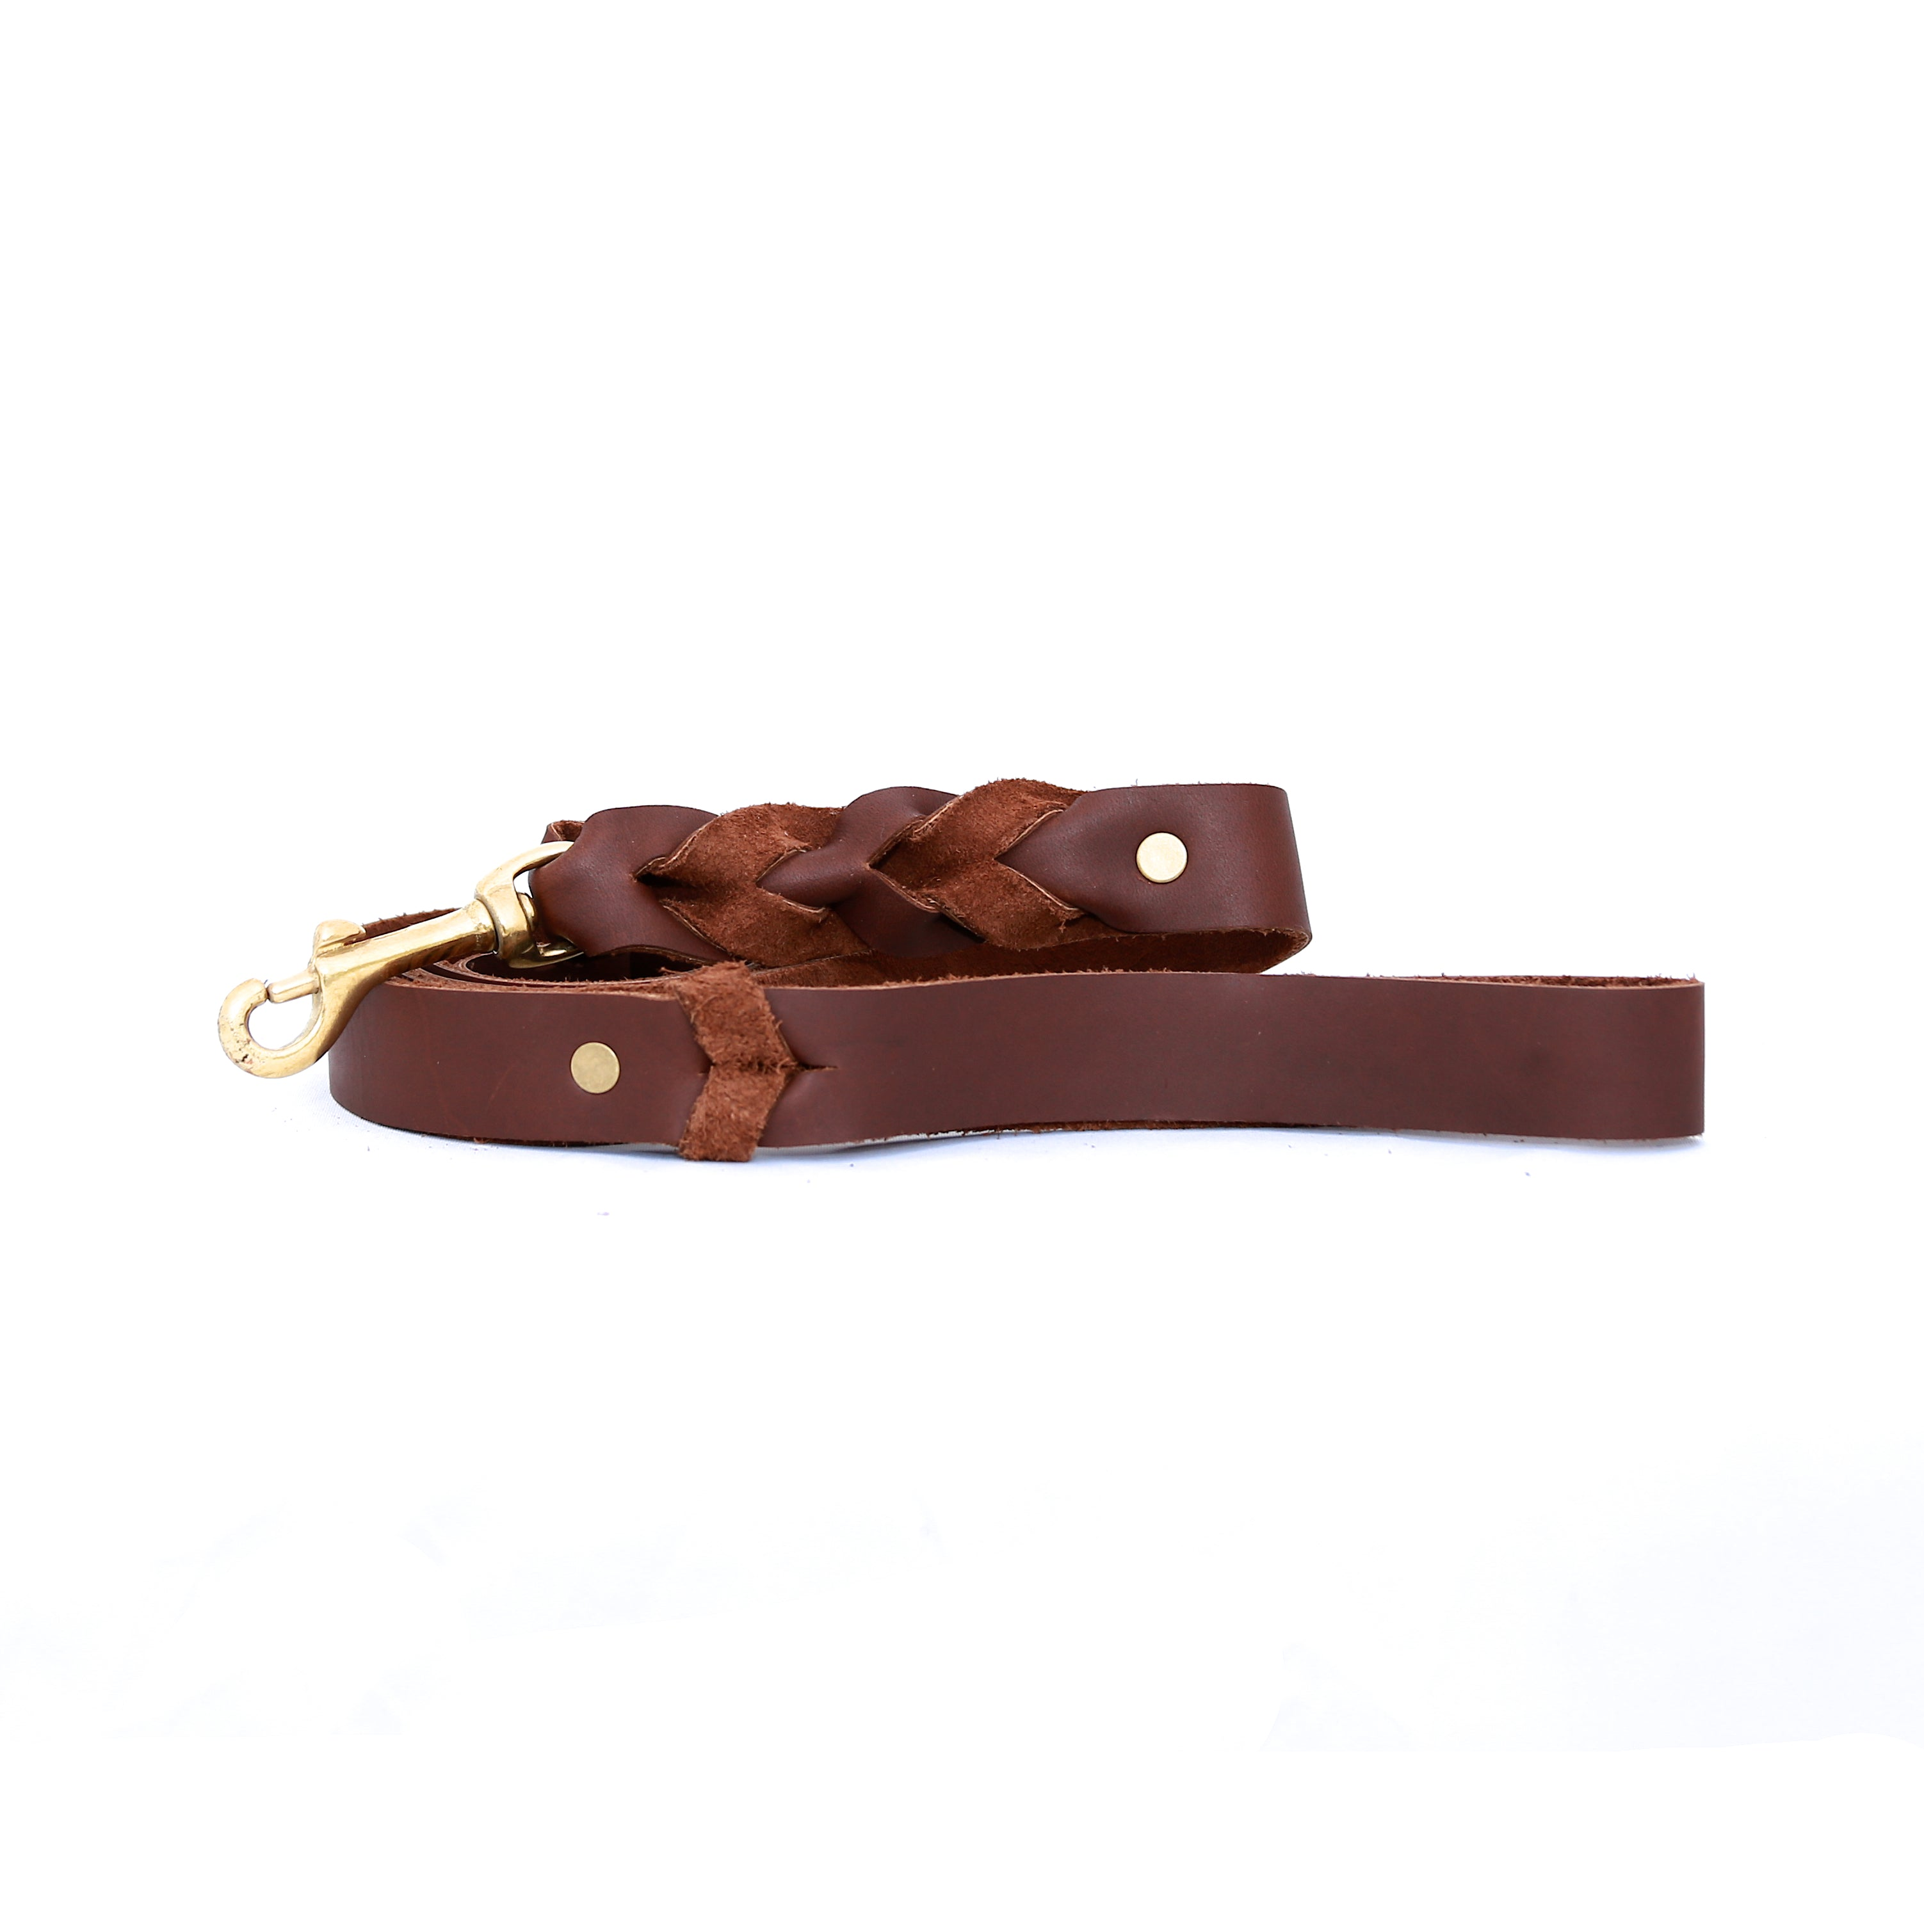 Dog Leash Leather - handcrafted by Market Canvas Leather in Tofino, BC, Canada